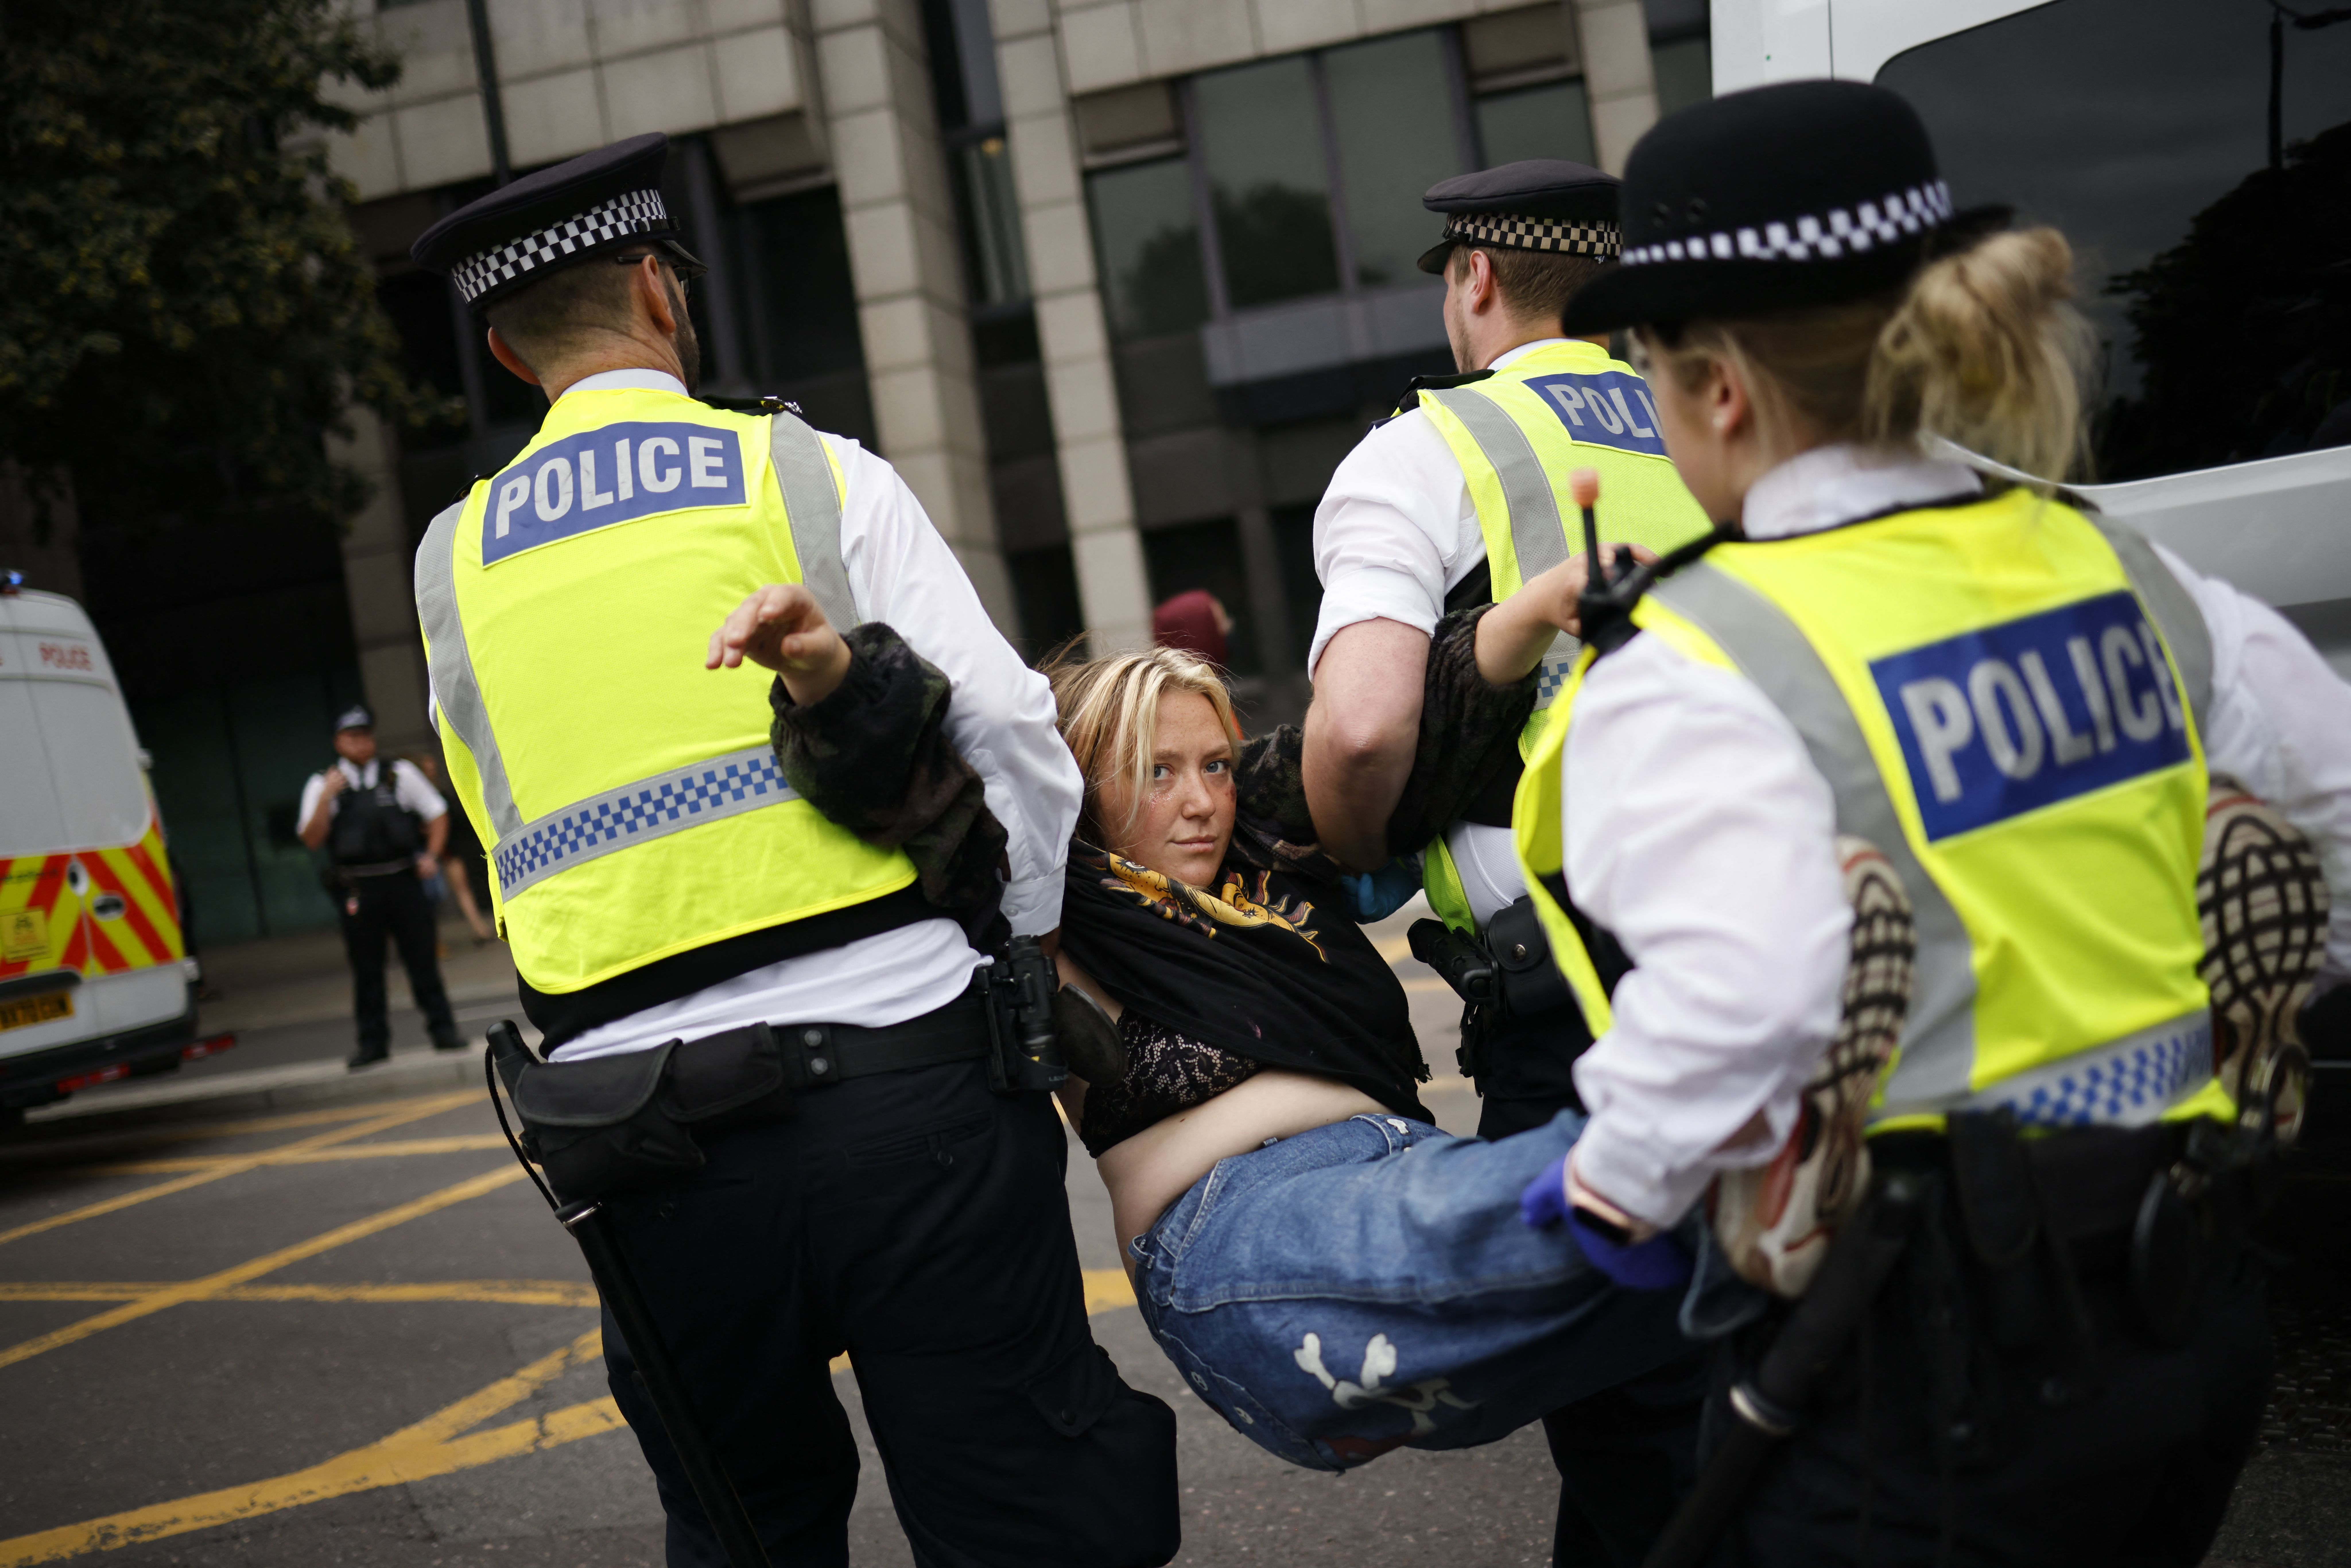 <p>Police officers escort away a climate activists from the Extinction Rebellion group blocking the road leading to Tower Bridge in central London on August 30, 2021 during the group's 'Impossible Rebellion' series of actions. - Climate change demonstrators from environmental activist group Extinction Rebellion continued with their latest round of protests in central London, promising two weeks of disruption. (Photo by Tolga Akmen / AFP) (Photo by TOLGA AKMEN/AFP via Getty Images)</p>